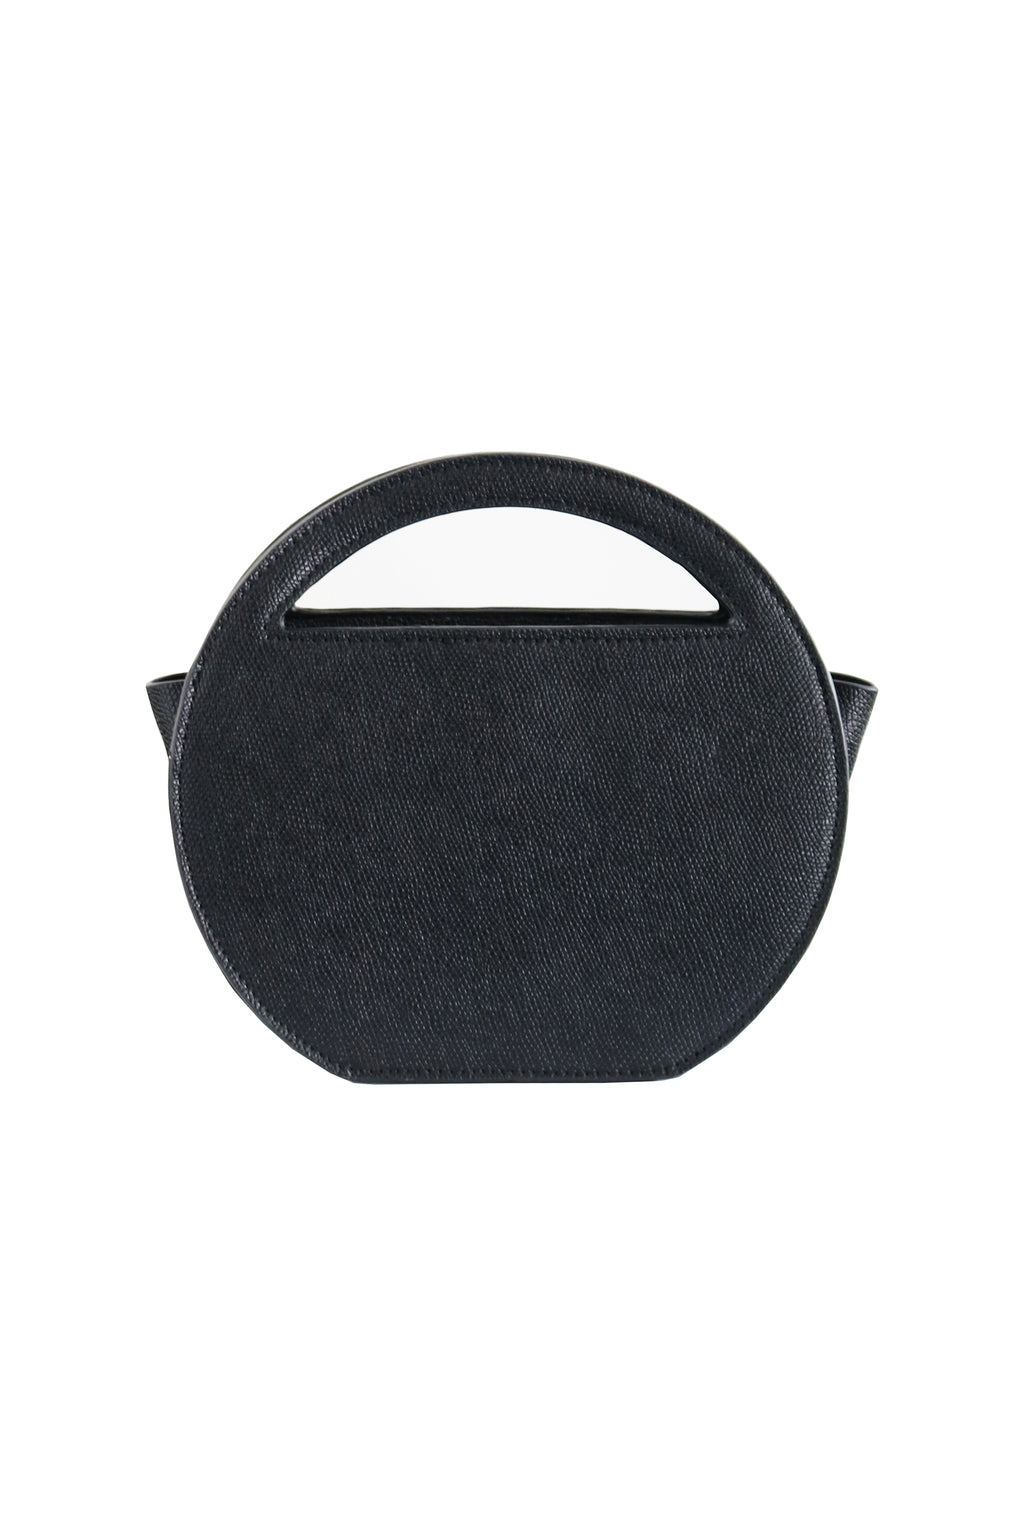 LIA BLACK CIRCLE BAG